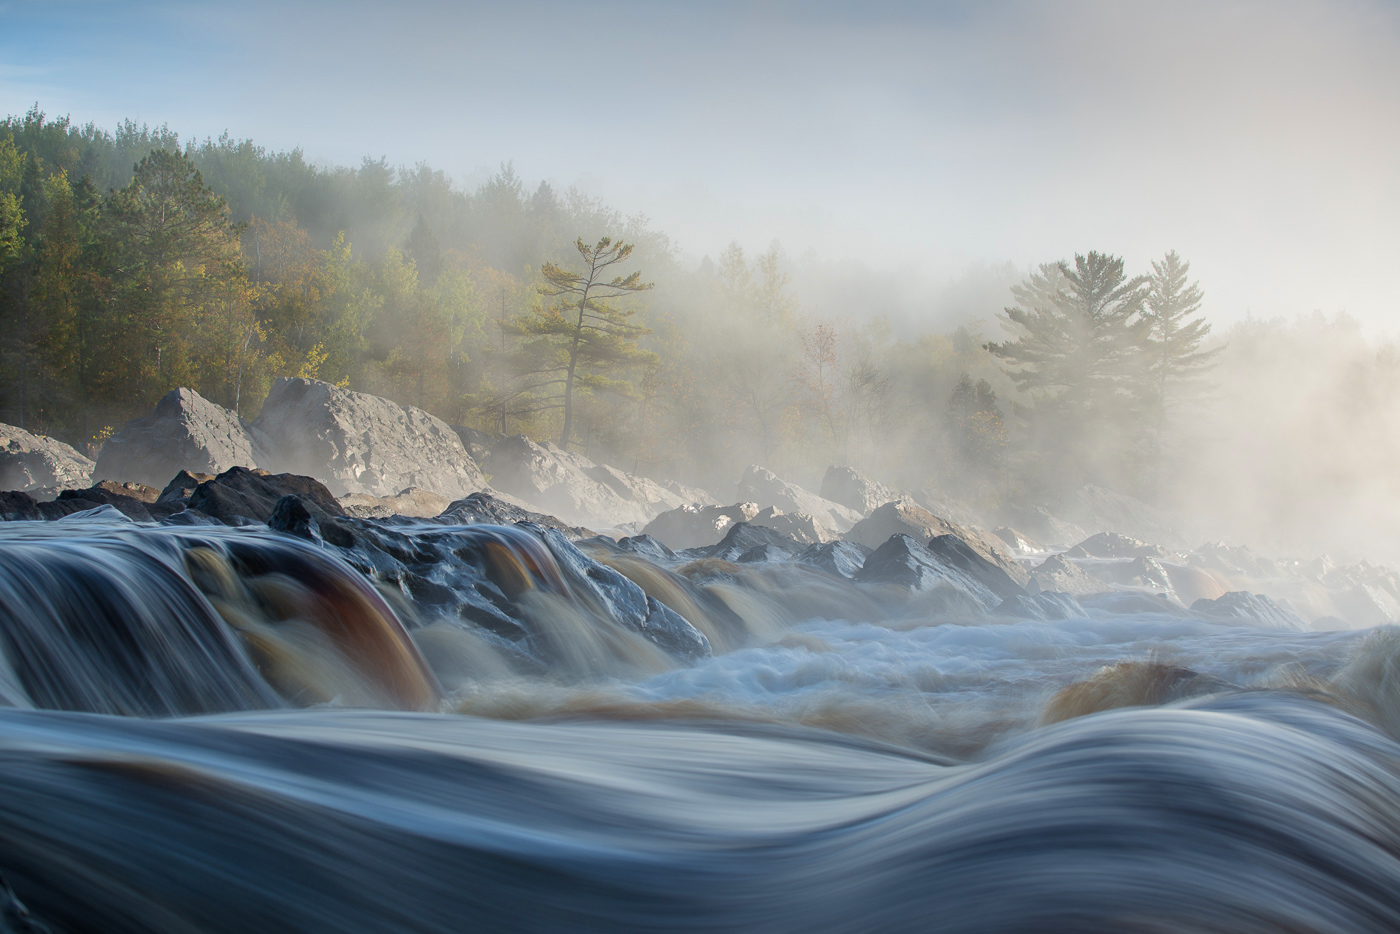 Morning fog and rapids on the St. Louis River, J. Cooke State Park, Minnesota